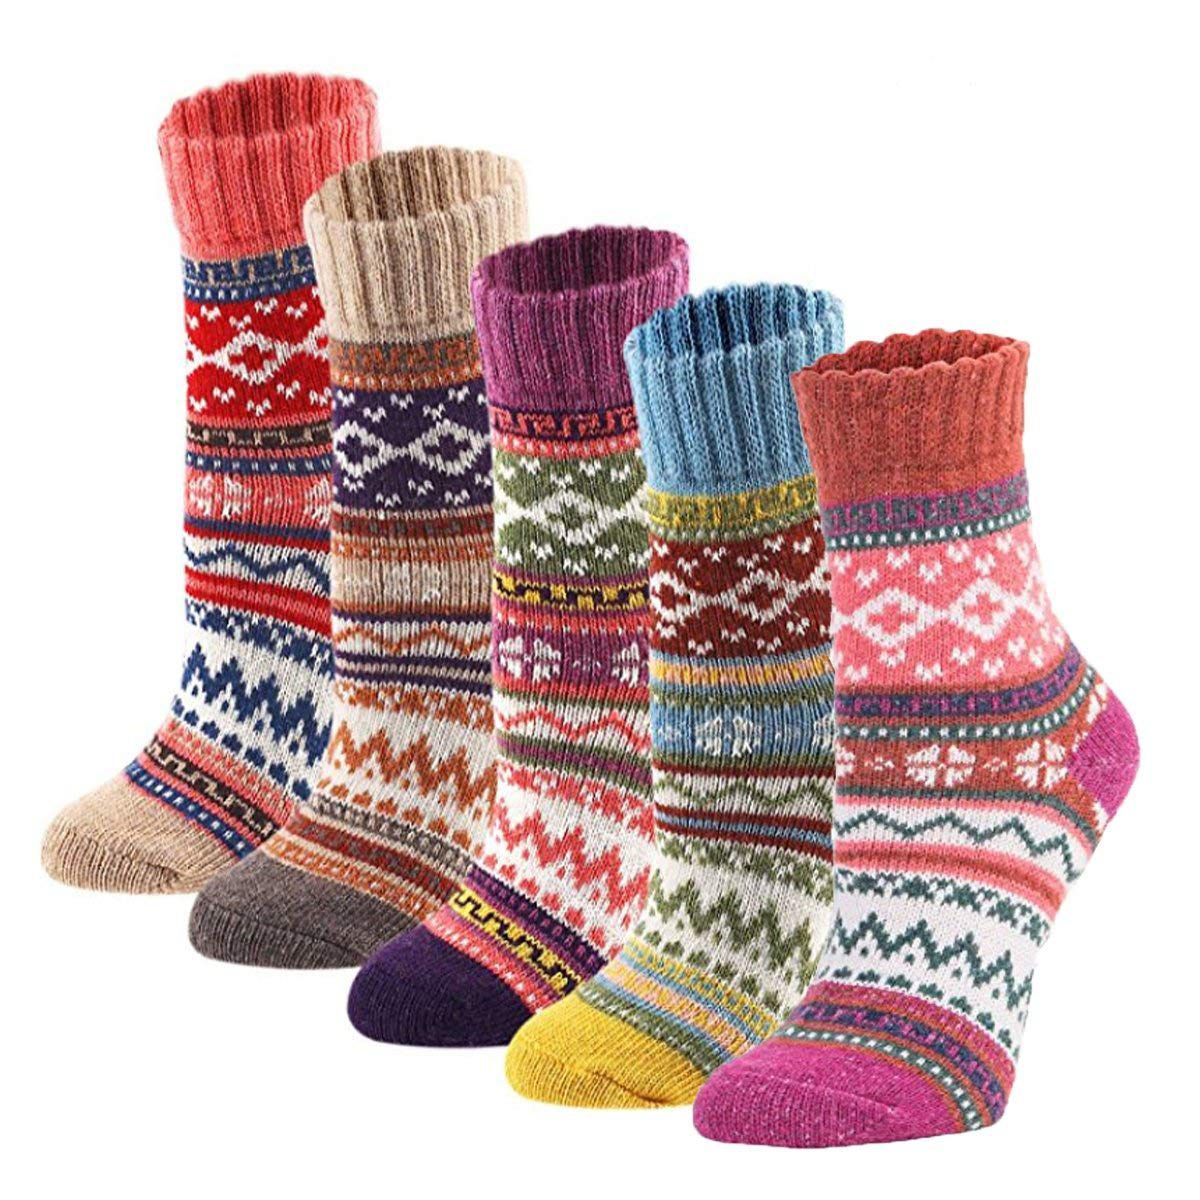 5pairs Women Vintage Winter Soft Warm Thick Cold Knit Crew Socks, Multicolor, free size